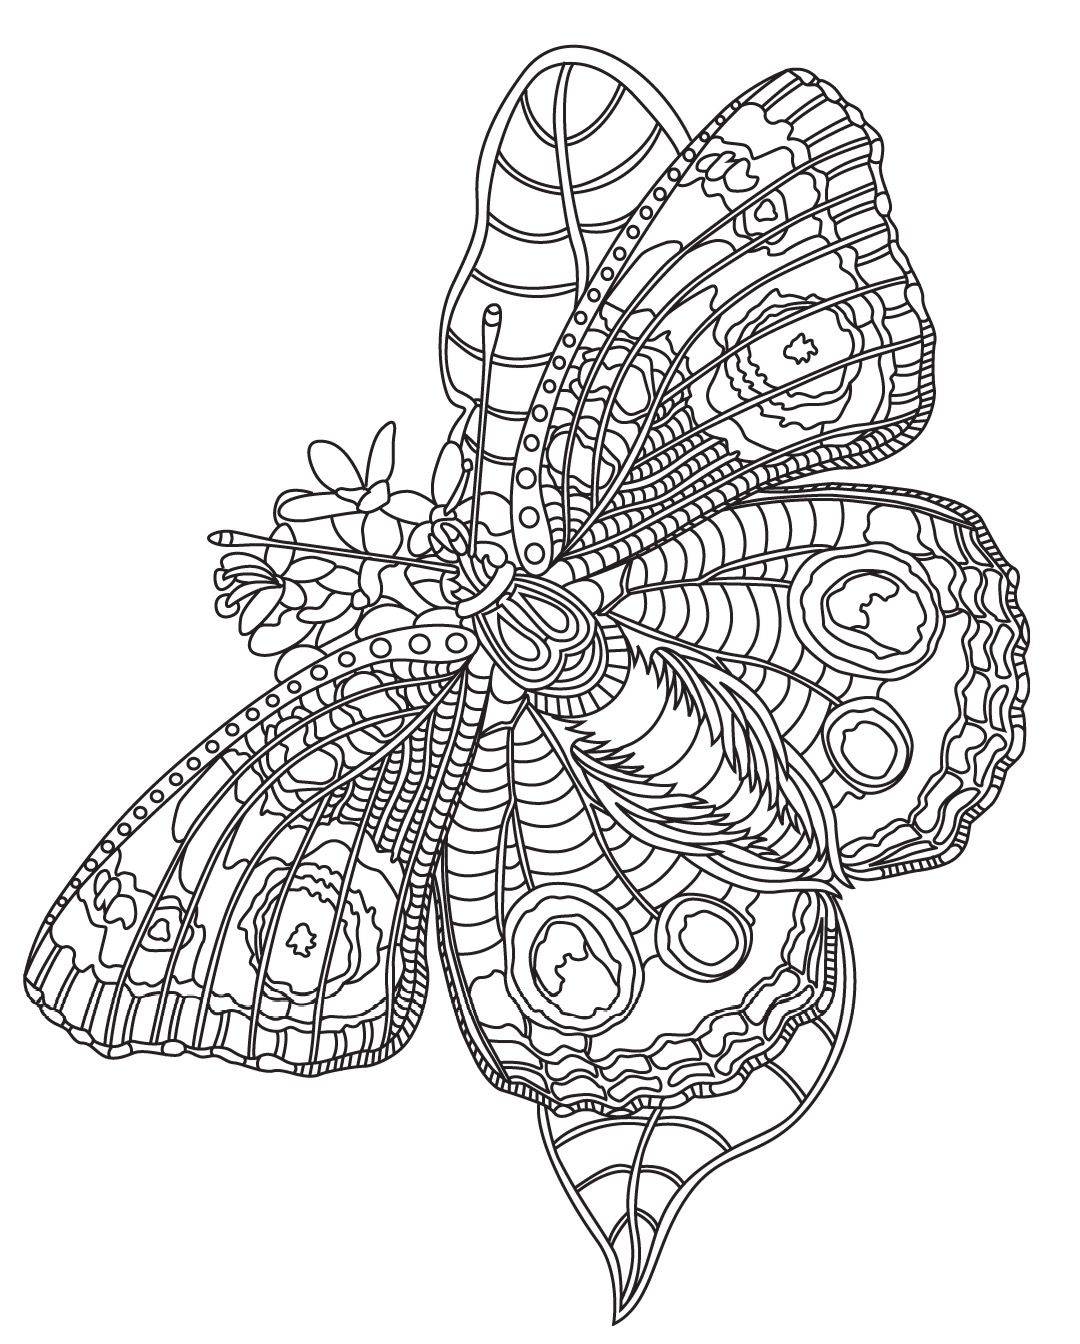 Butterfly Colorish Coloring Book For Adults Mandala Relax By Goodsofttech Insect Coloring Pages Butterfly Drawing Coloring Pages [ 1344 x 1080 Pixel ]